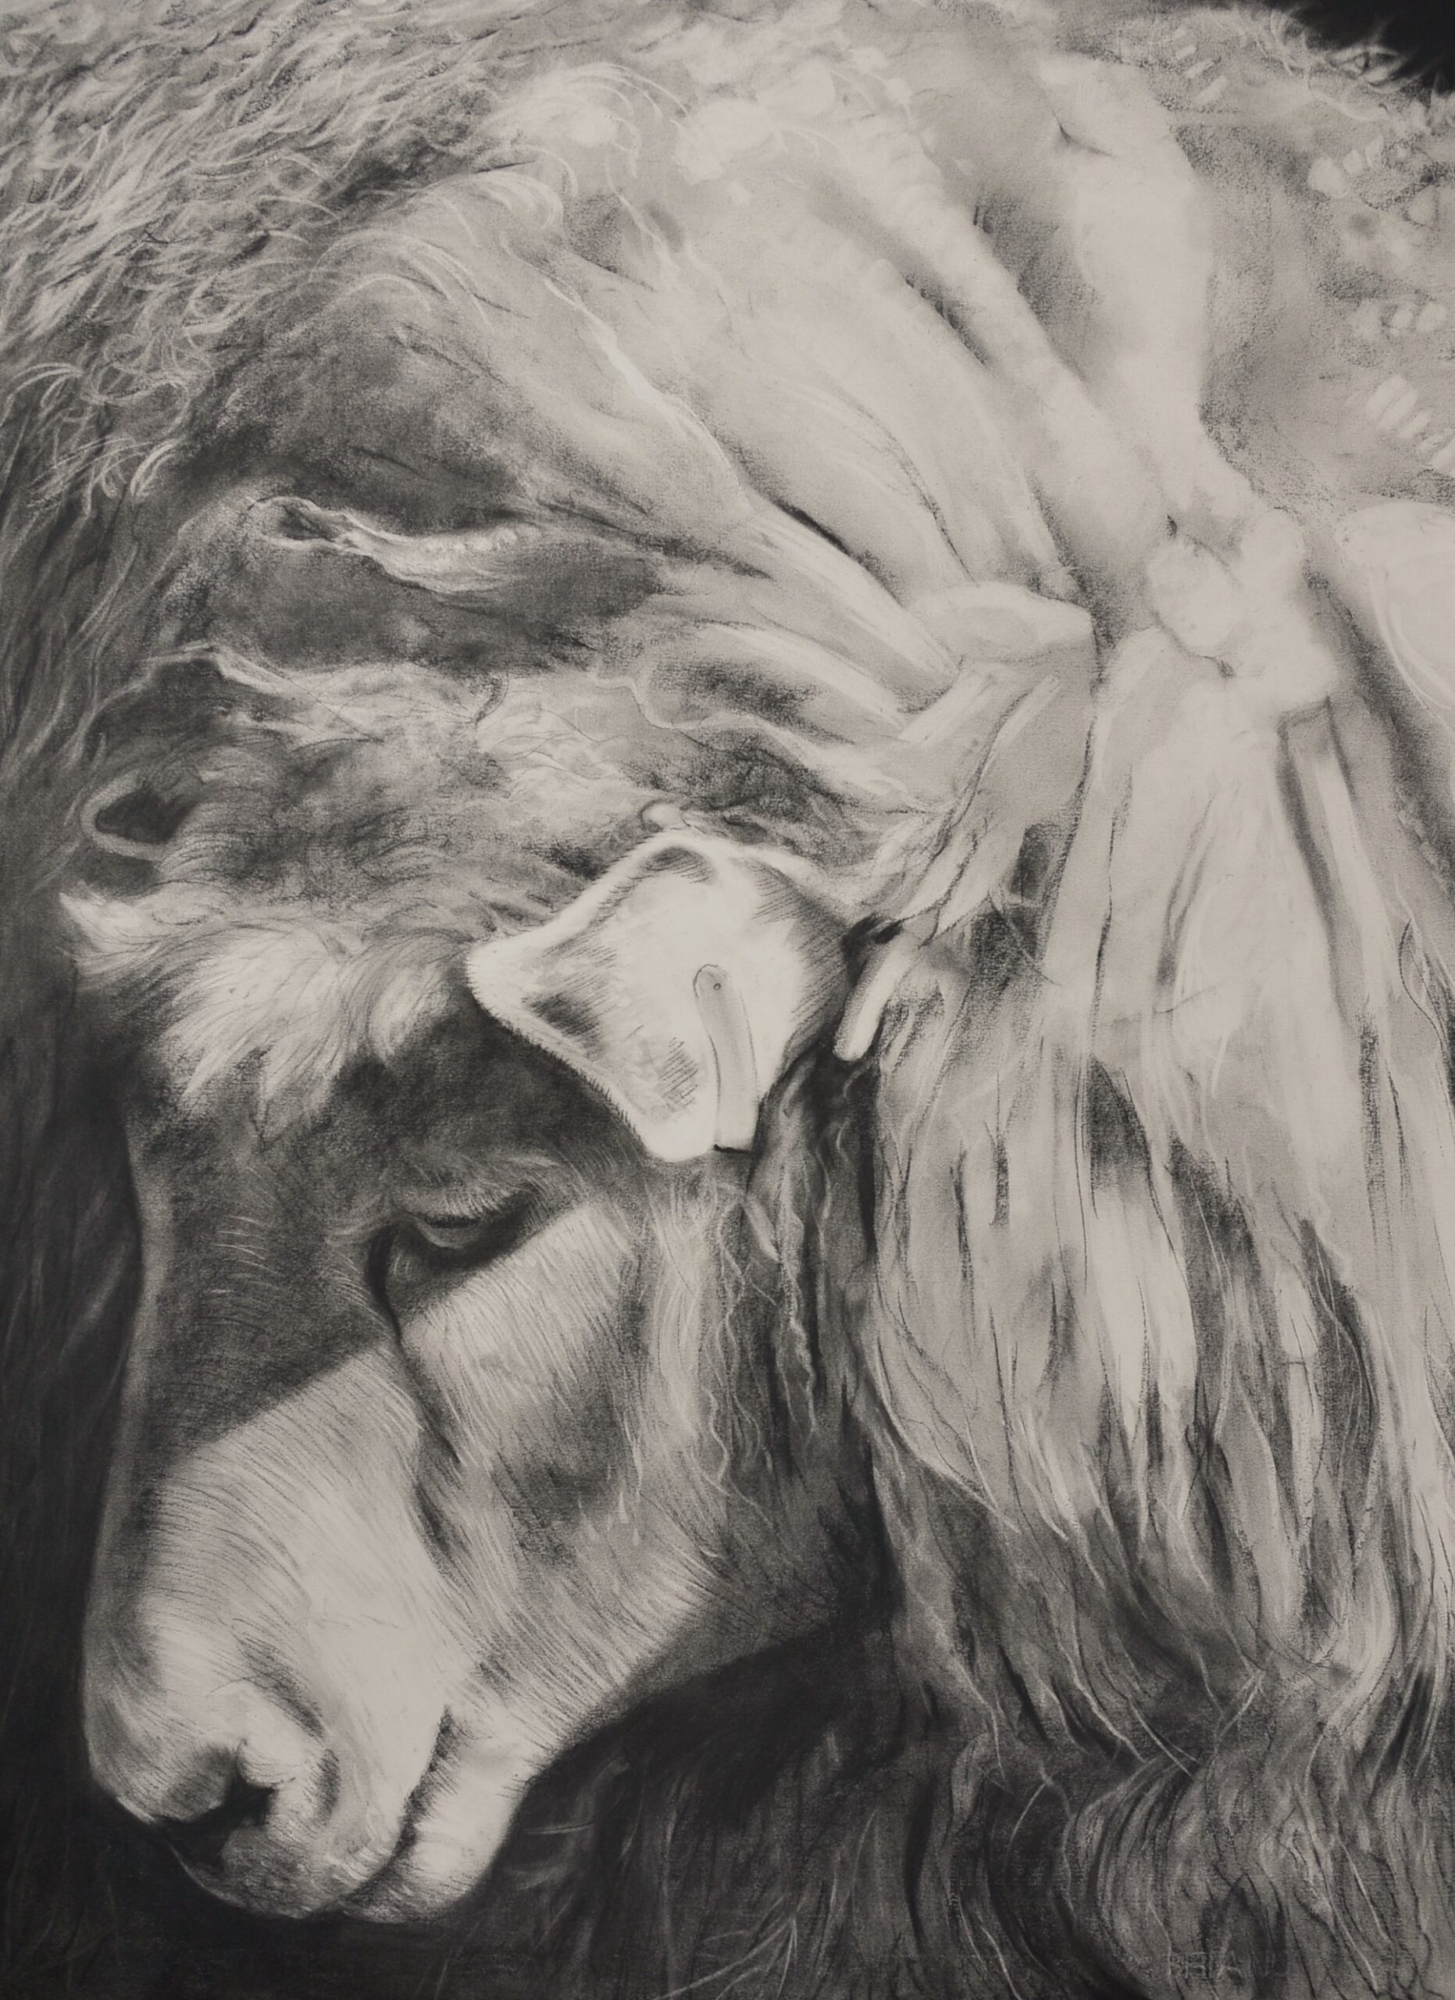 Charcoal drawing of a sheep head down